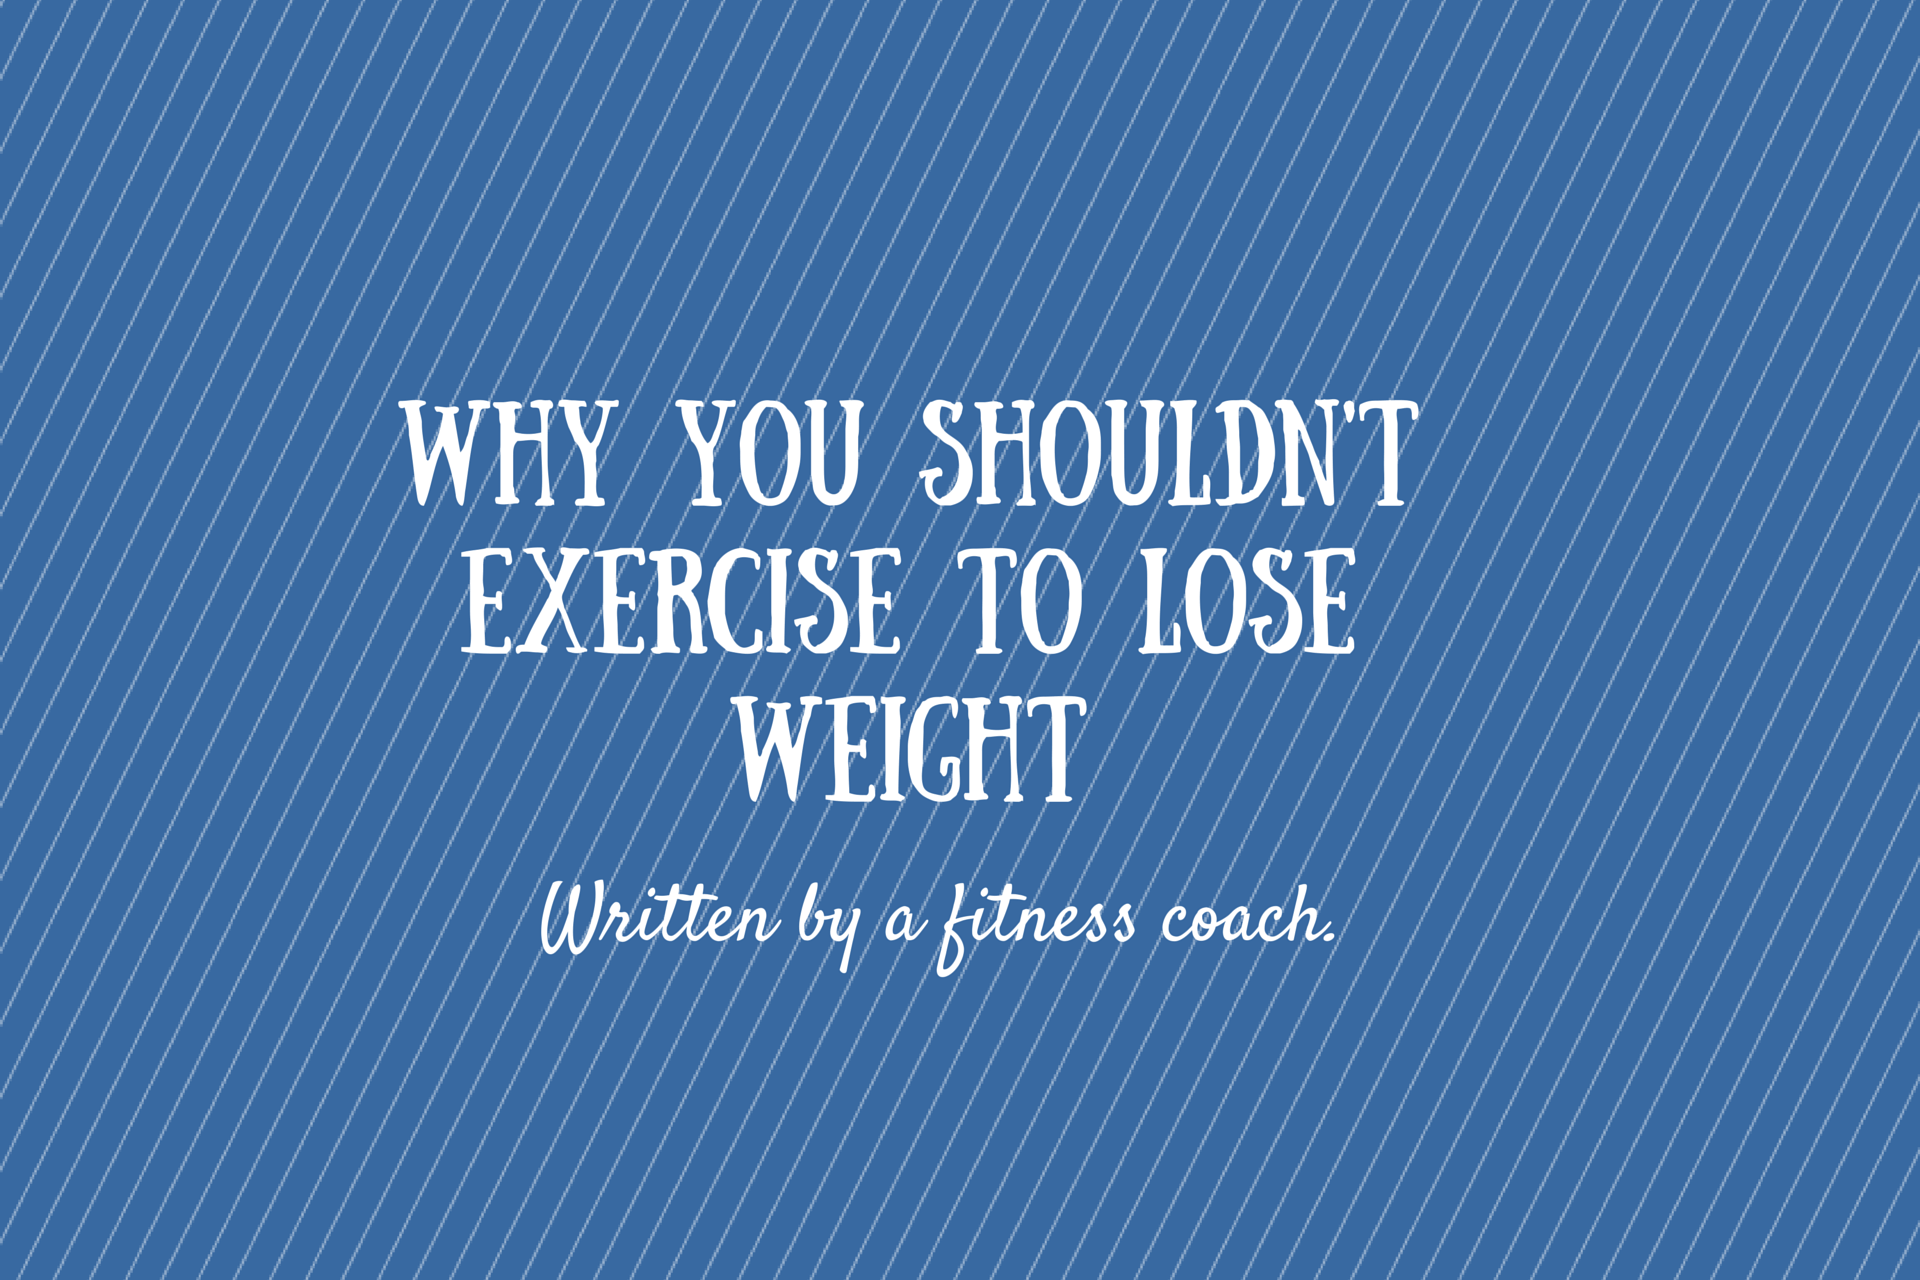 Why you shouldn't exercise to lose weight